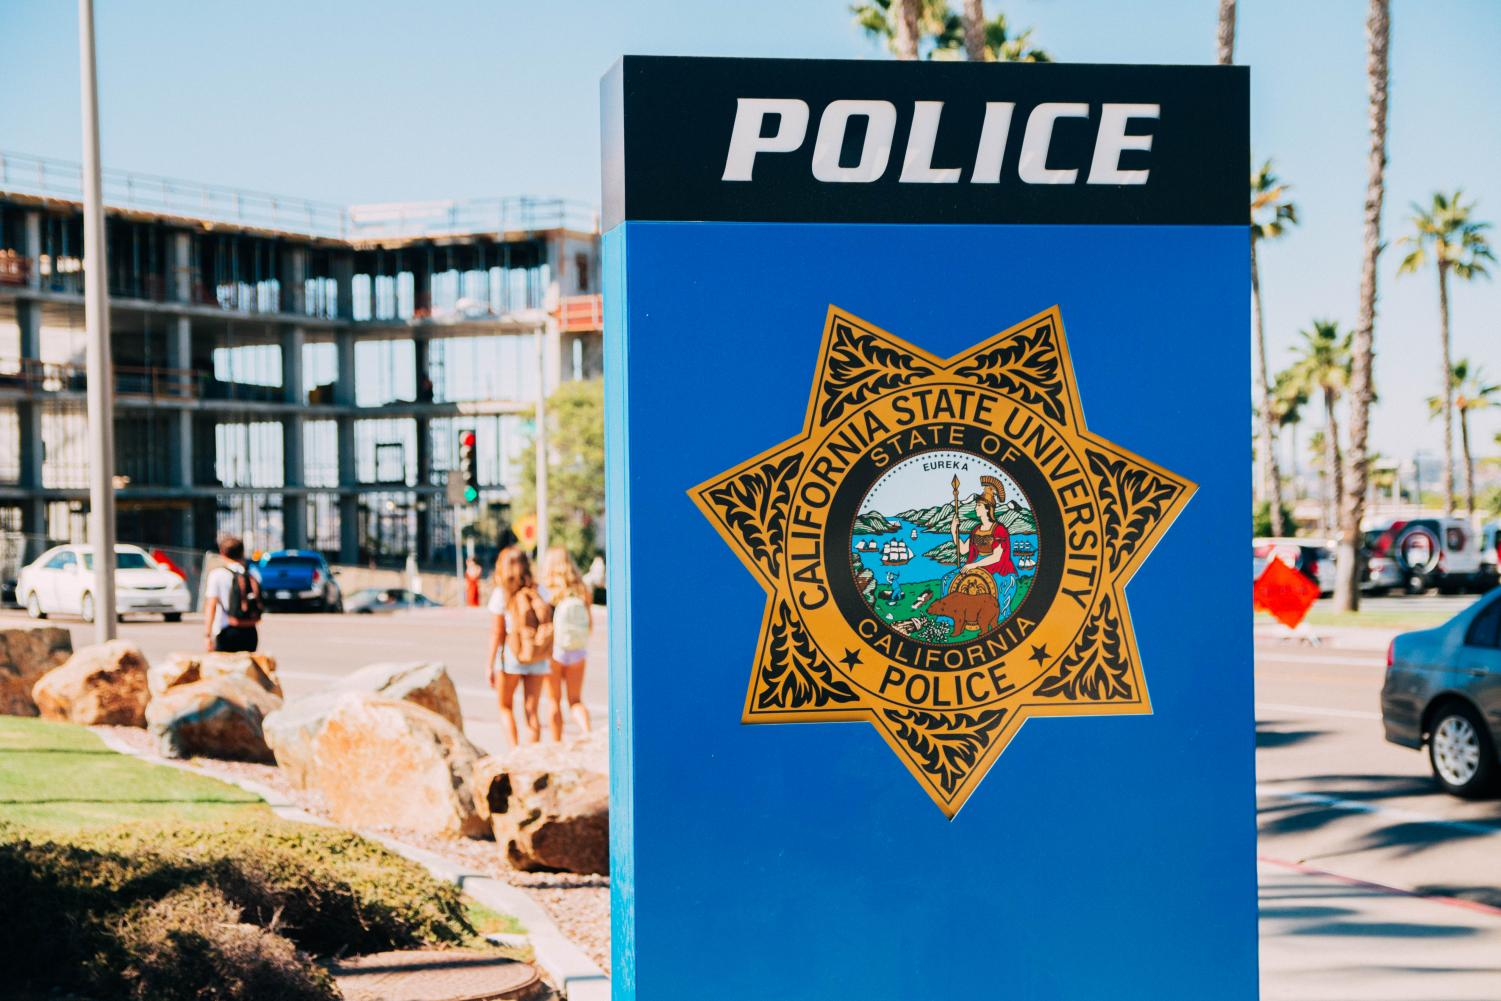 Police are currently investigating a reported sexual assault in SDSU's Villa Alvarado apartment complex.